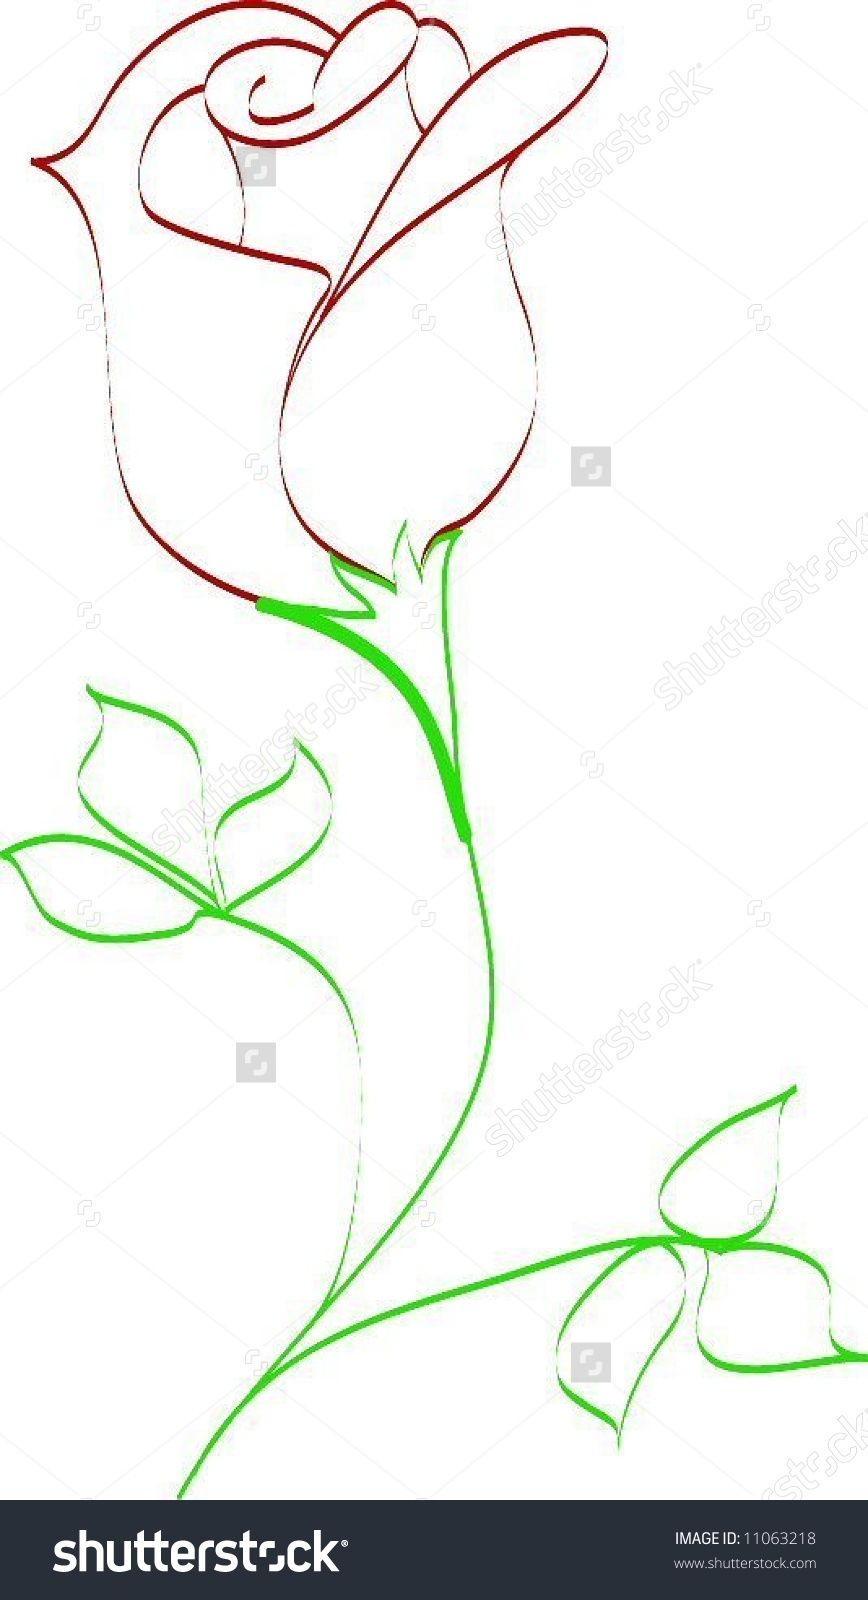 868x1600 Simple Line Drawing Of Rose Bud Stock Vector Illustration 11063218